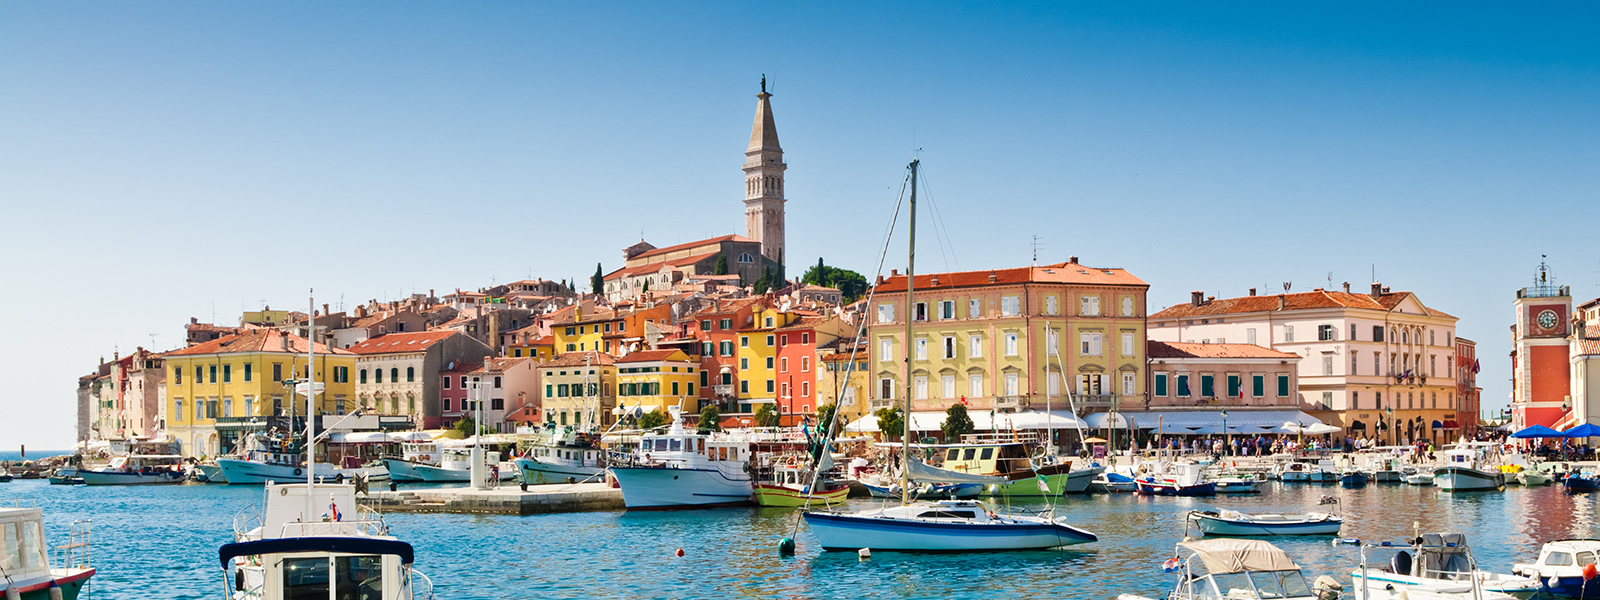 Eastern Europe Holidays Tour Packages from India, Croatia